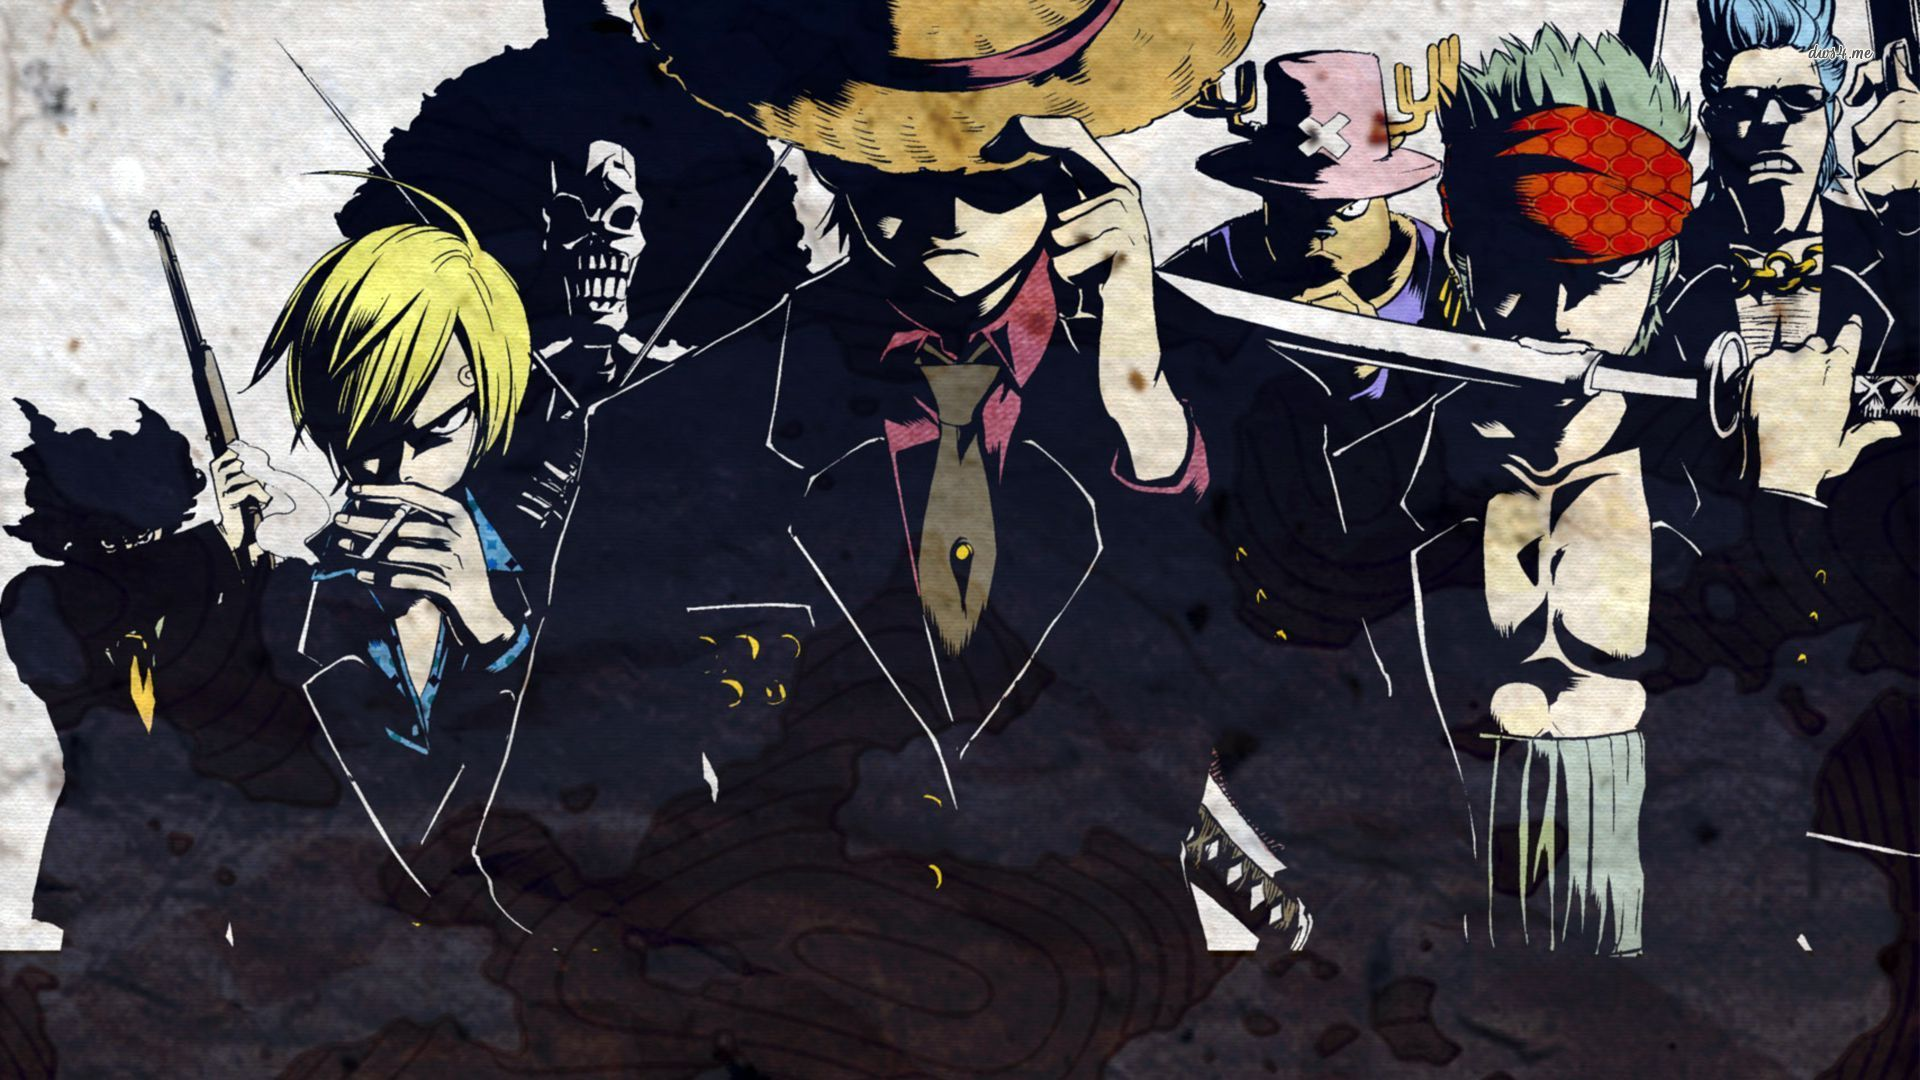 The wallpaper trend is going strong. One piece desktop wallpapers - SF Wallpaper